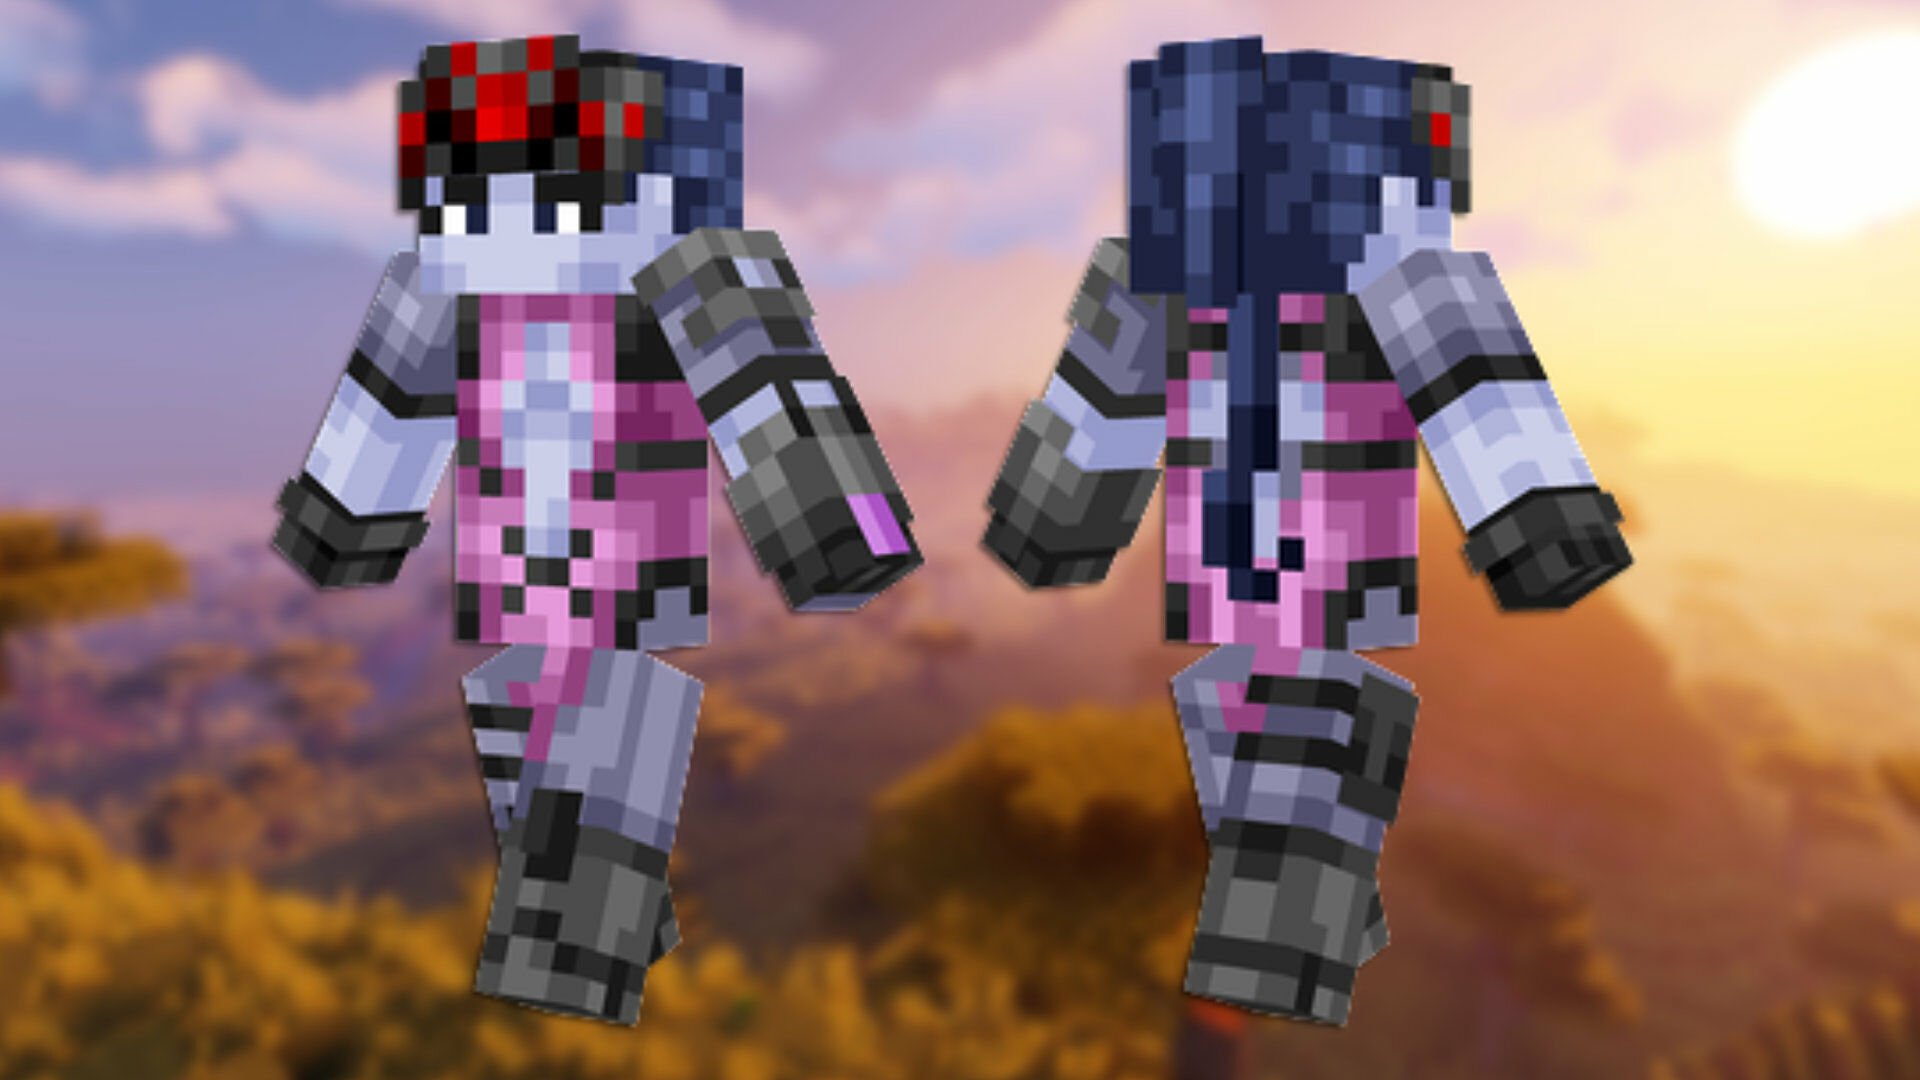 A front and back view of the Zombie Pigman Minecraft skin.